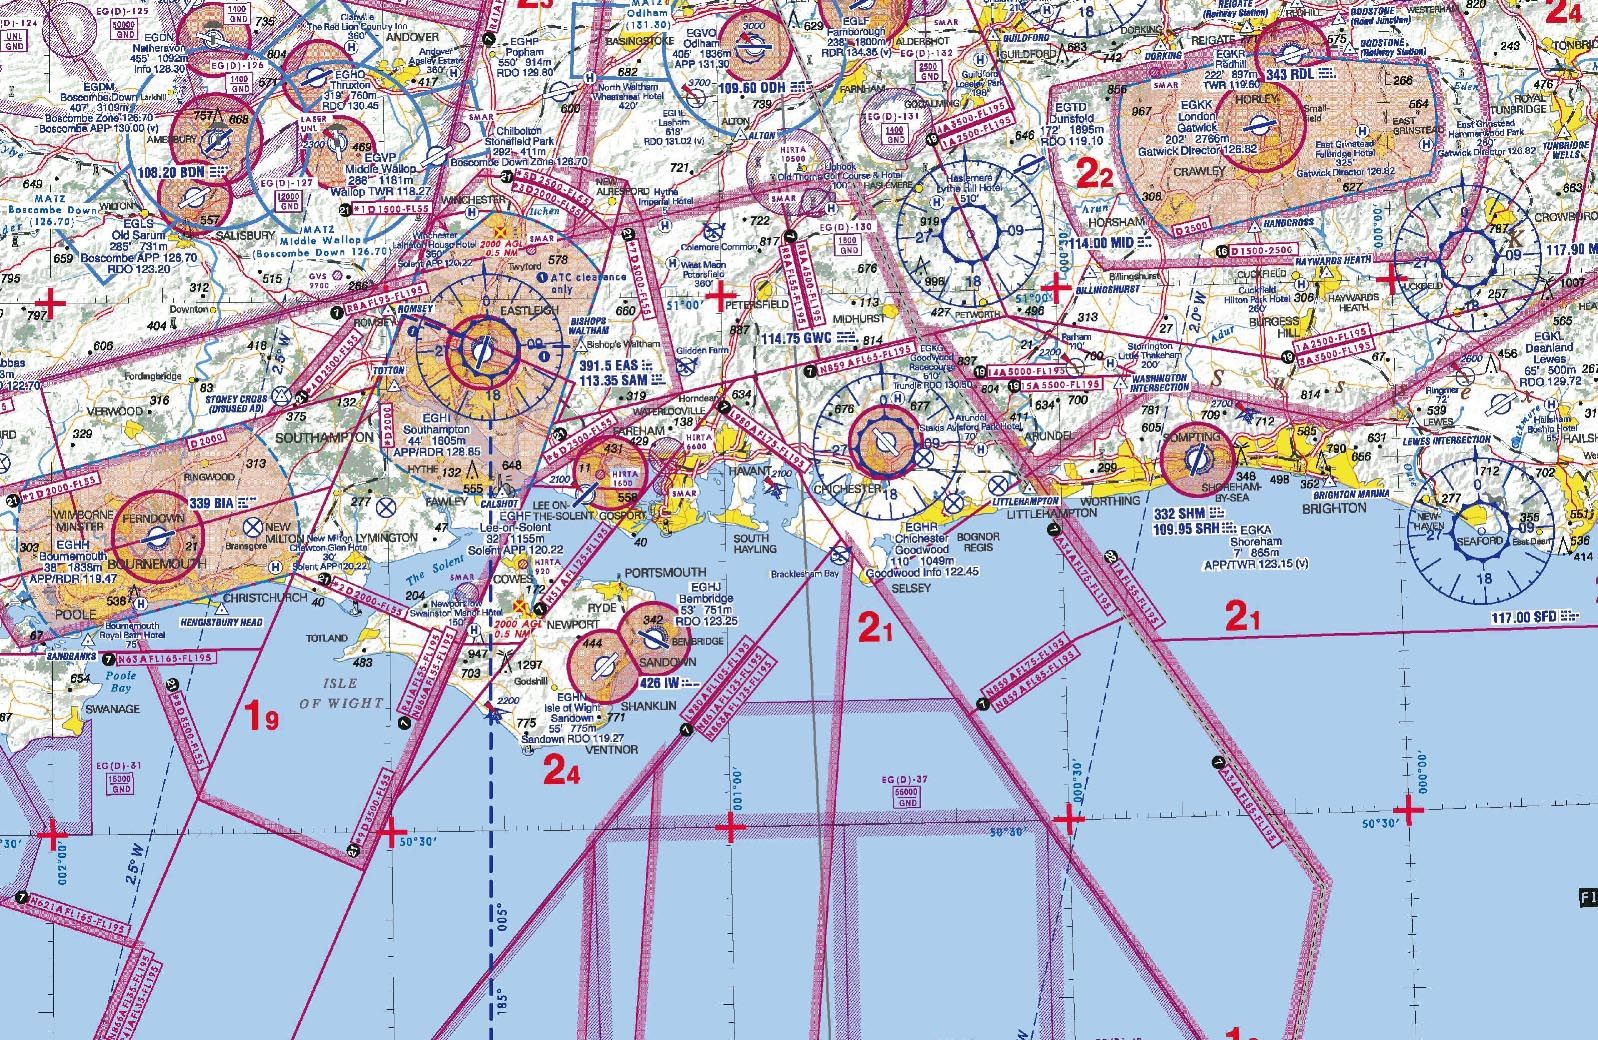 VFR Aviation Map Maps Drawings Pinterest Aviation - Class g airspace map